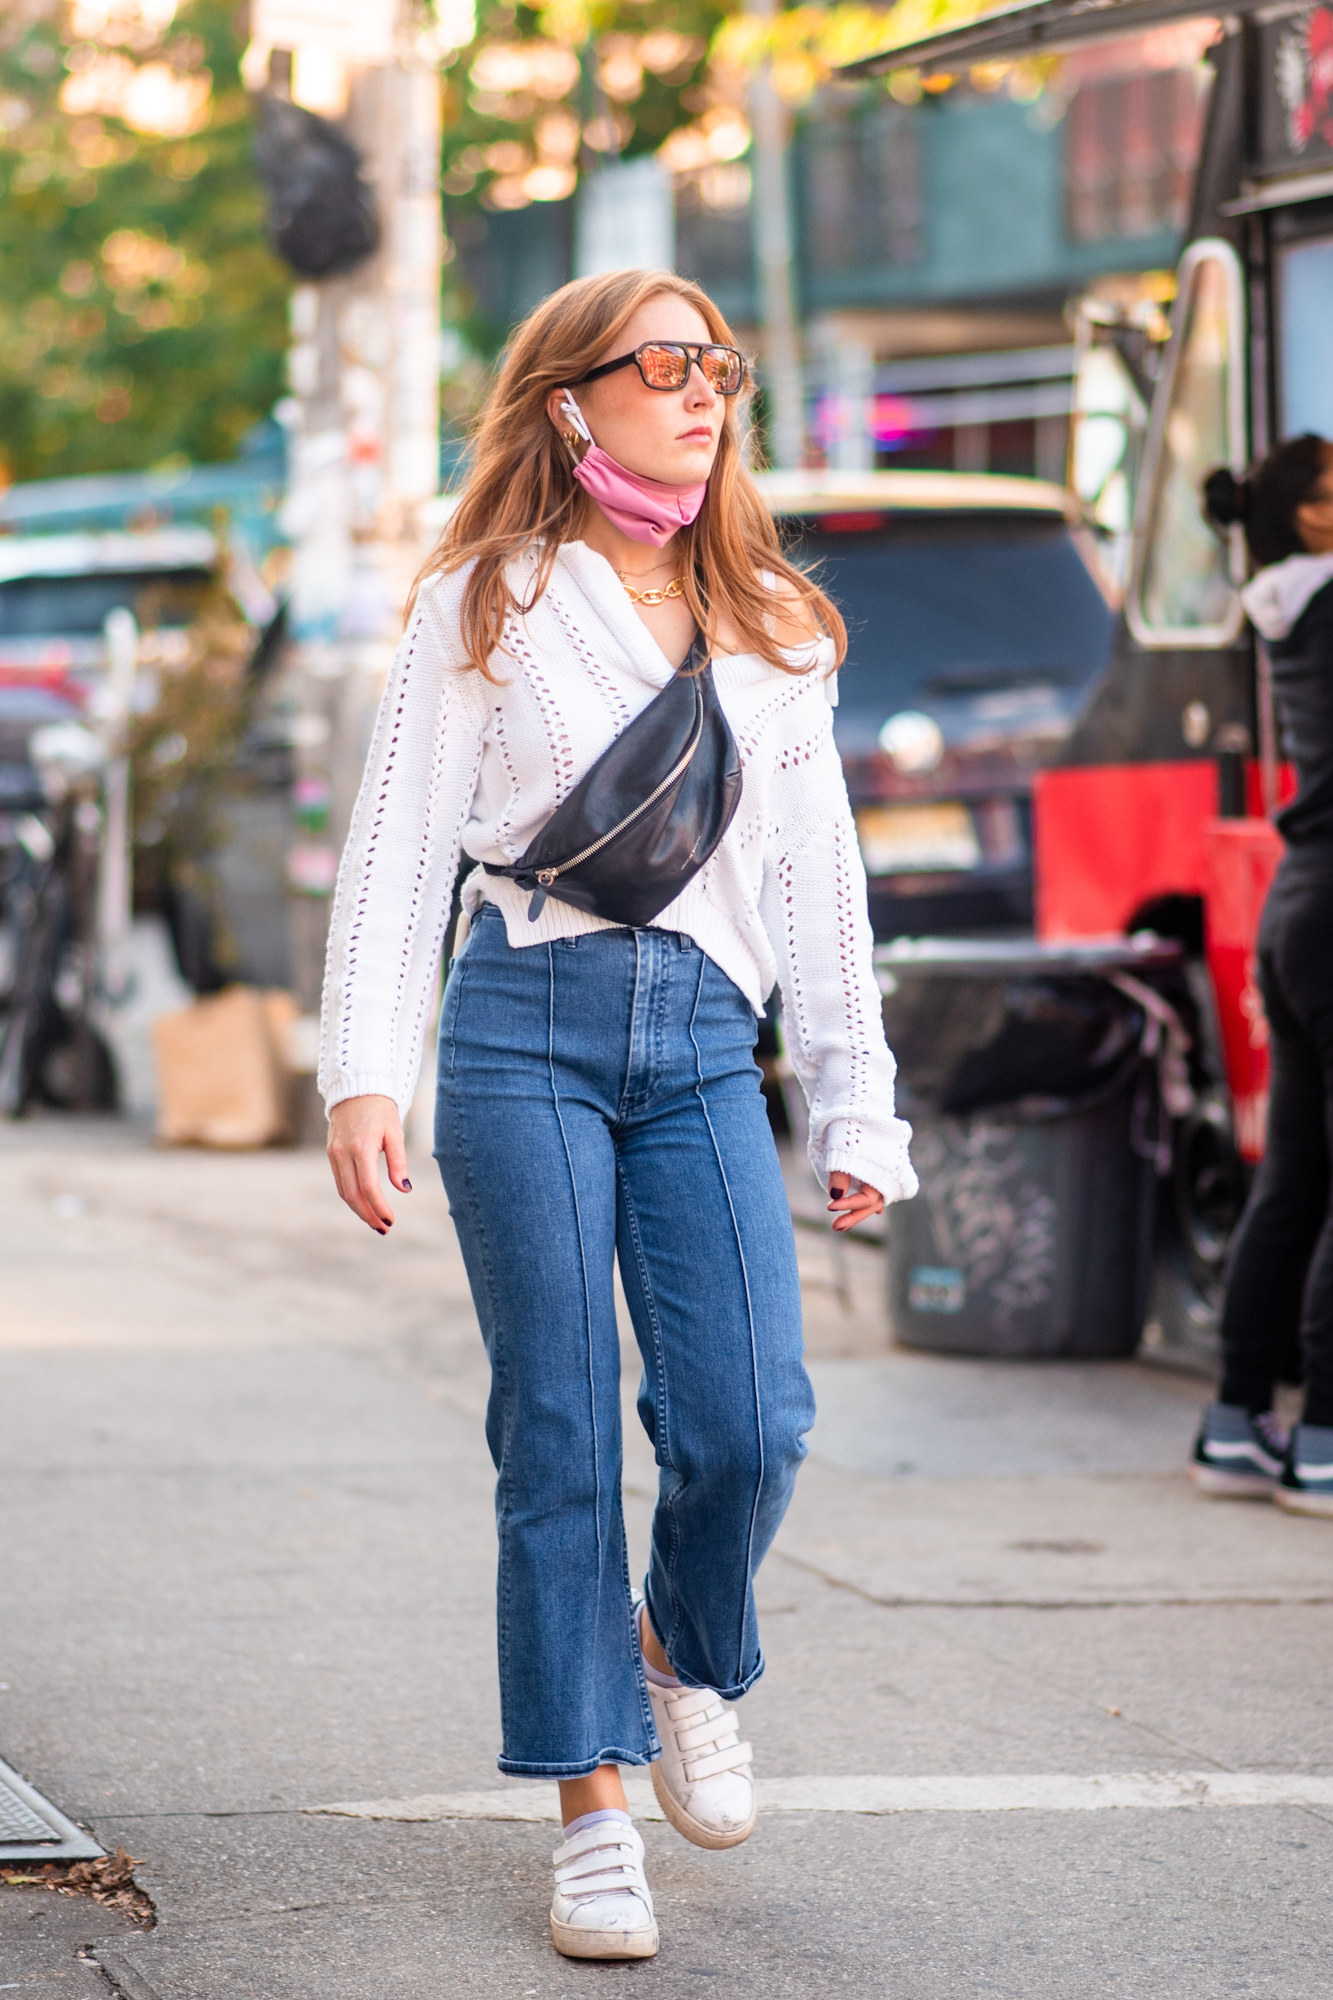 NYC street style fall outfit idea - woman wearing light weight white sweater, straight leg jeans, and cross body bag - Karya Schanilec NYC fashion photographer